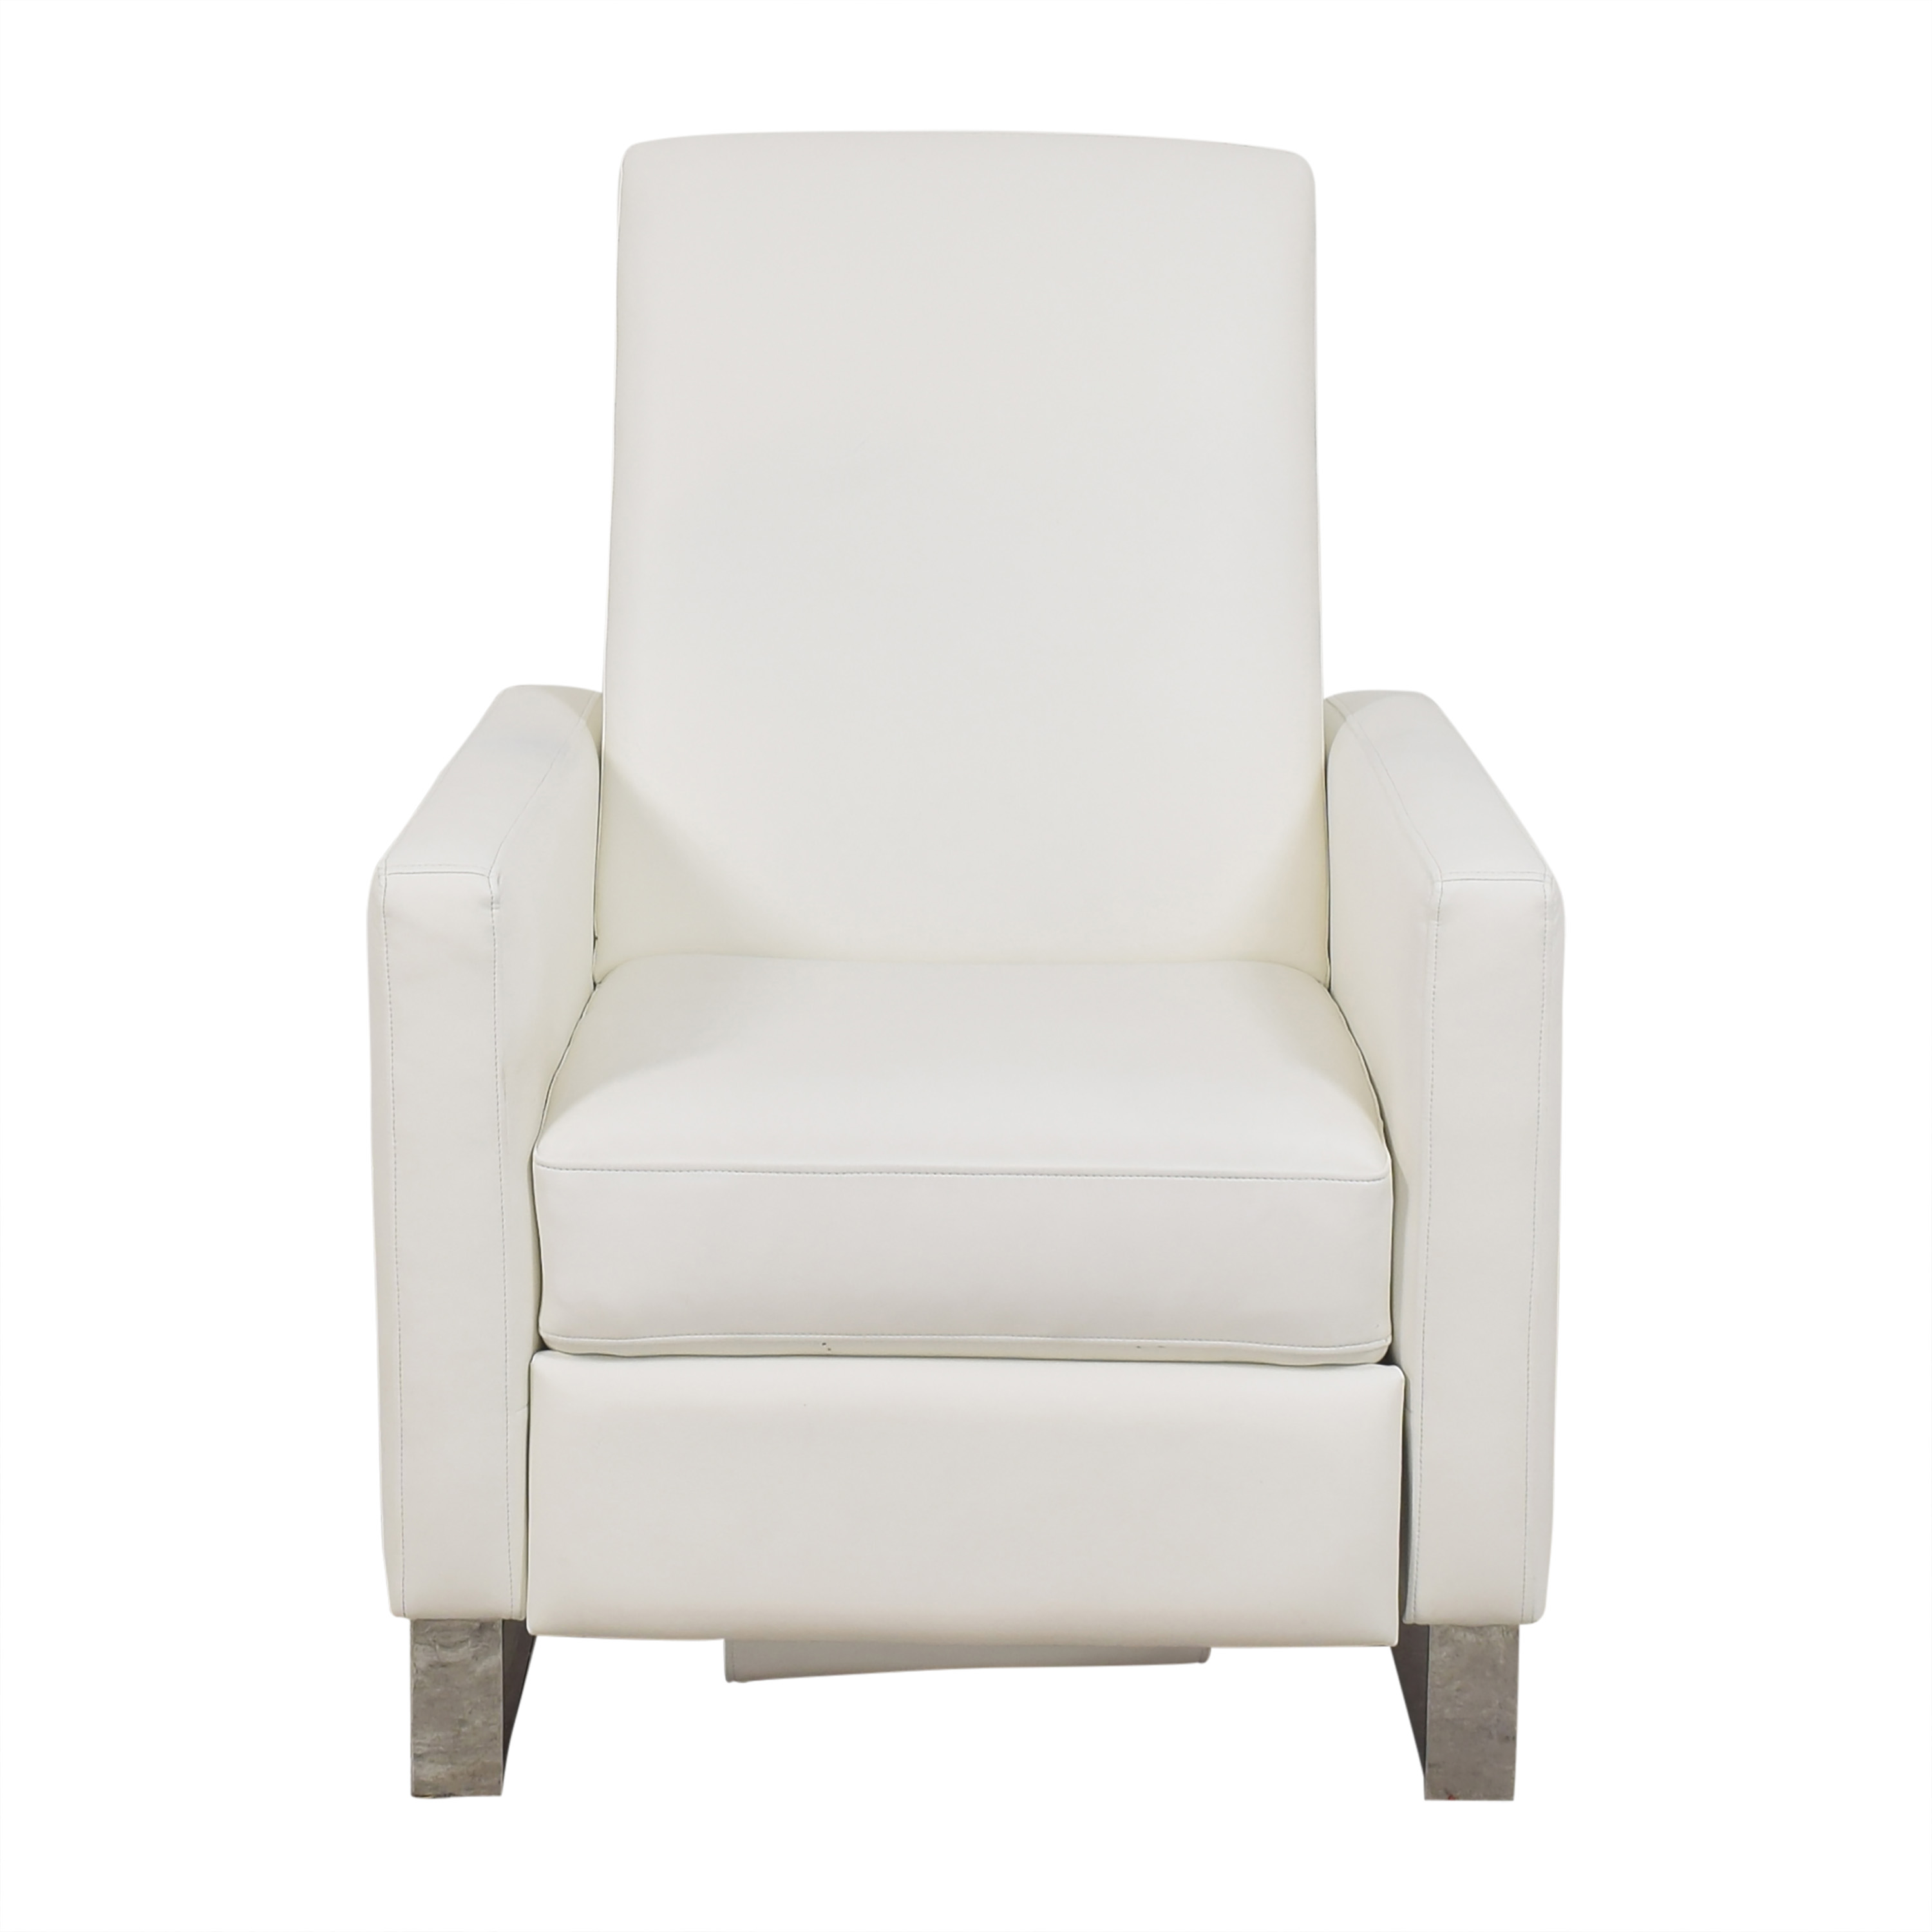 buy Orren Ellis Orren Ellis Lionel Manual Recliner by Safavieh online